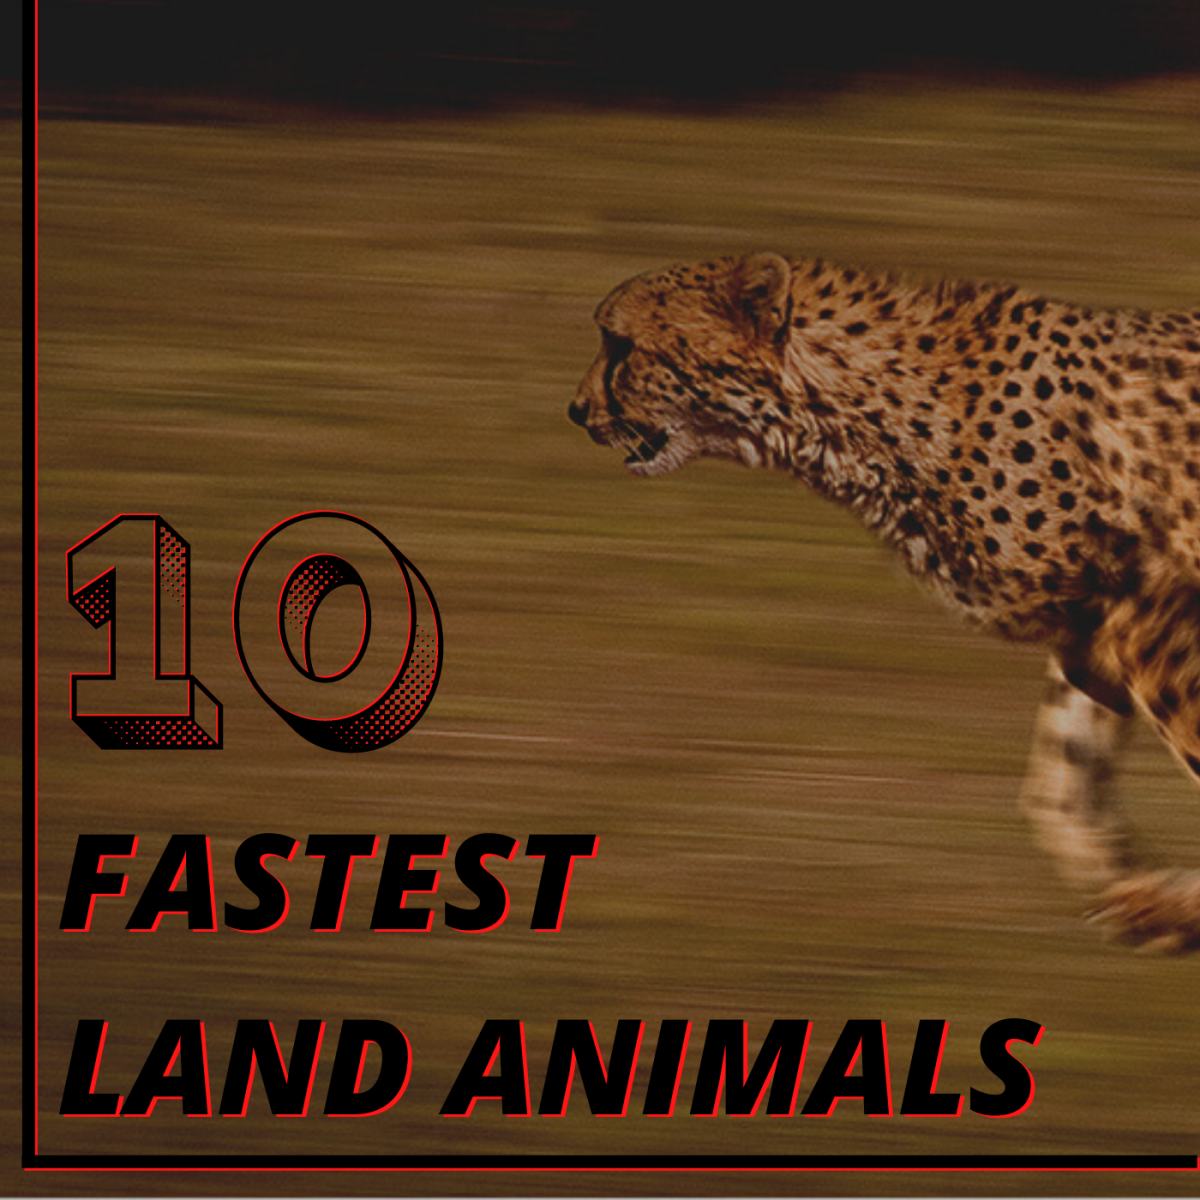 The Top 10 Fastest Land Animals in the World